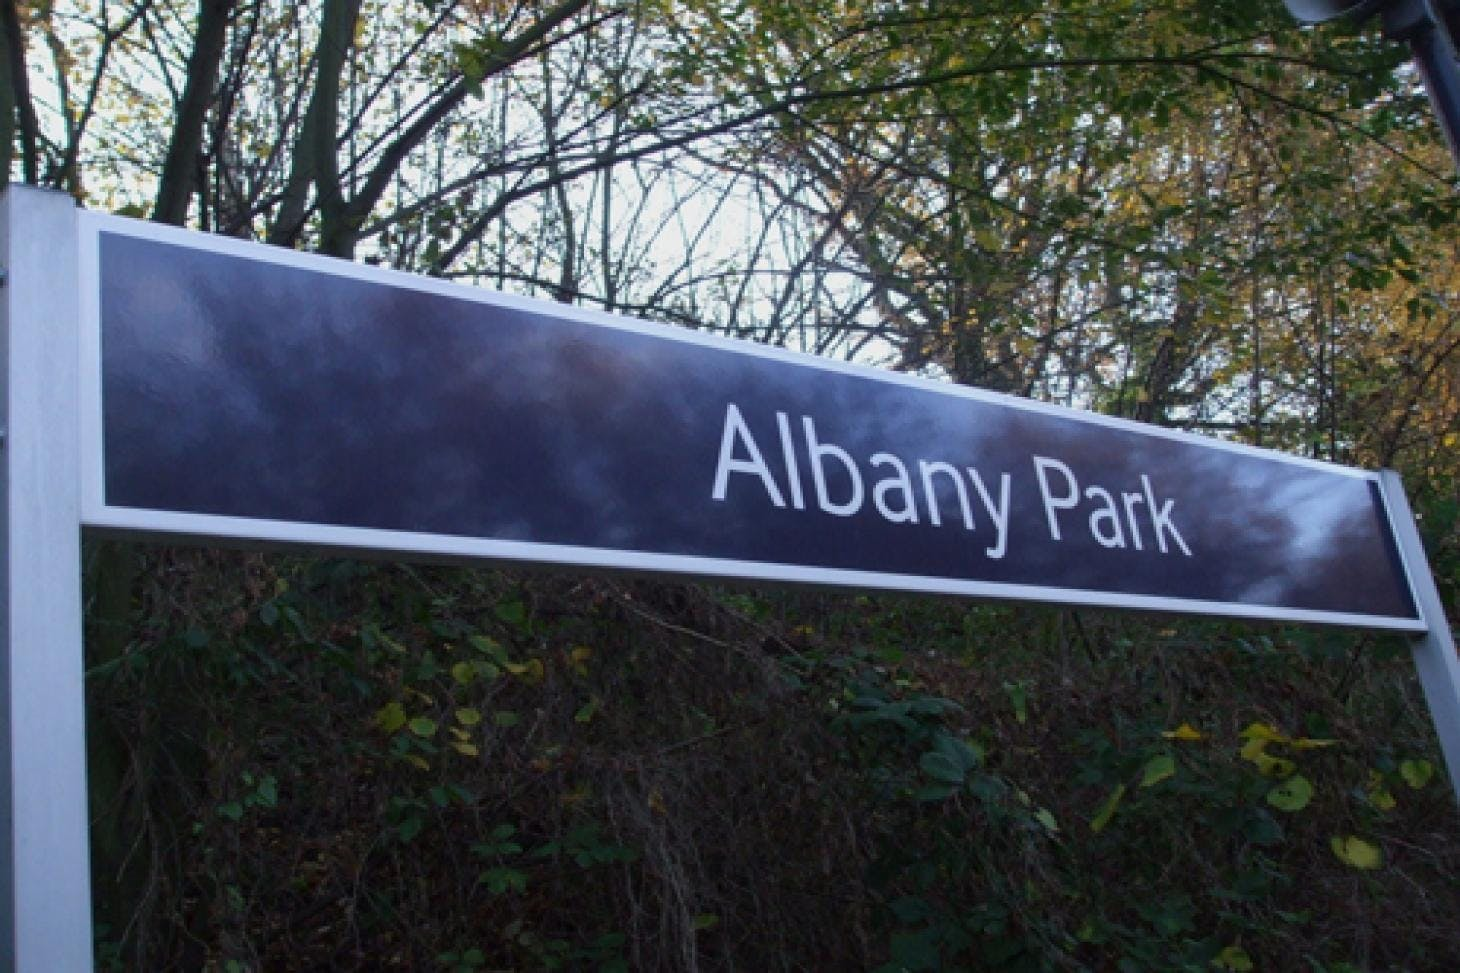 Albany Park 5 a side | Concrete football pitch